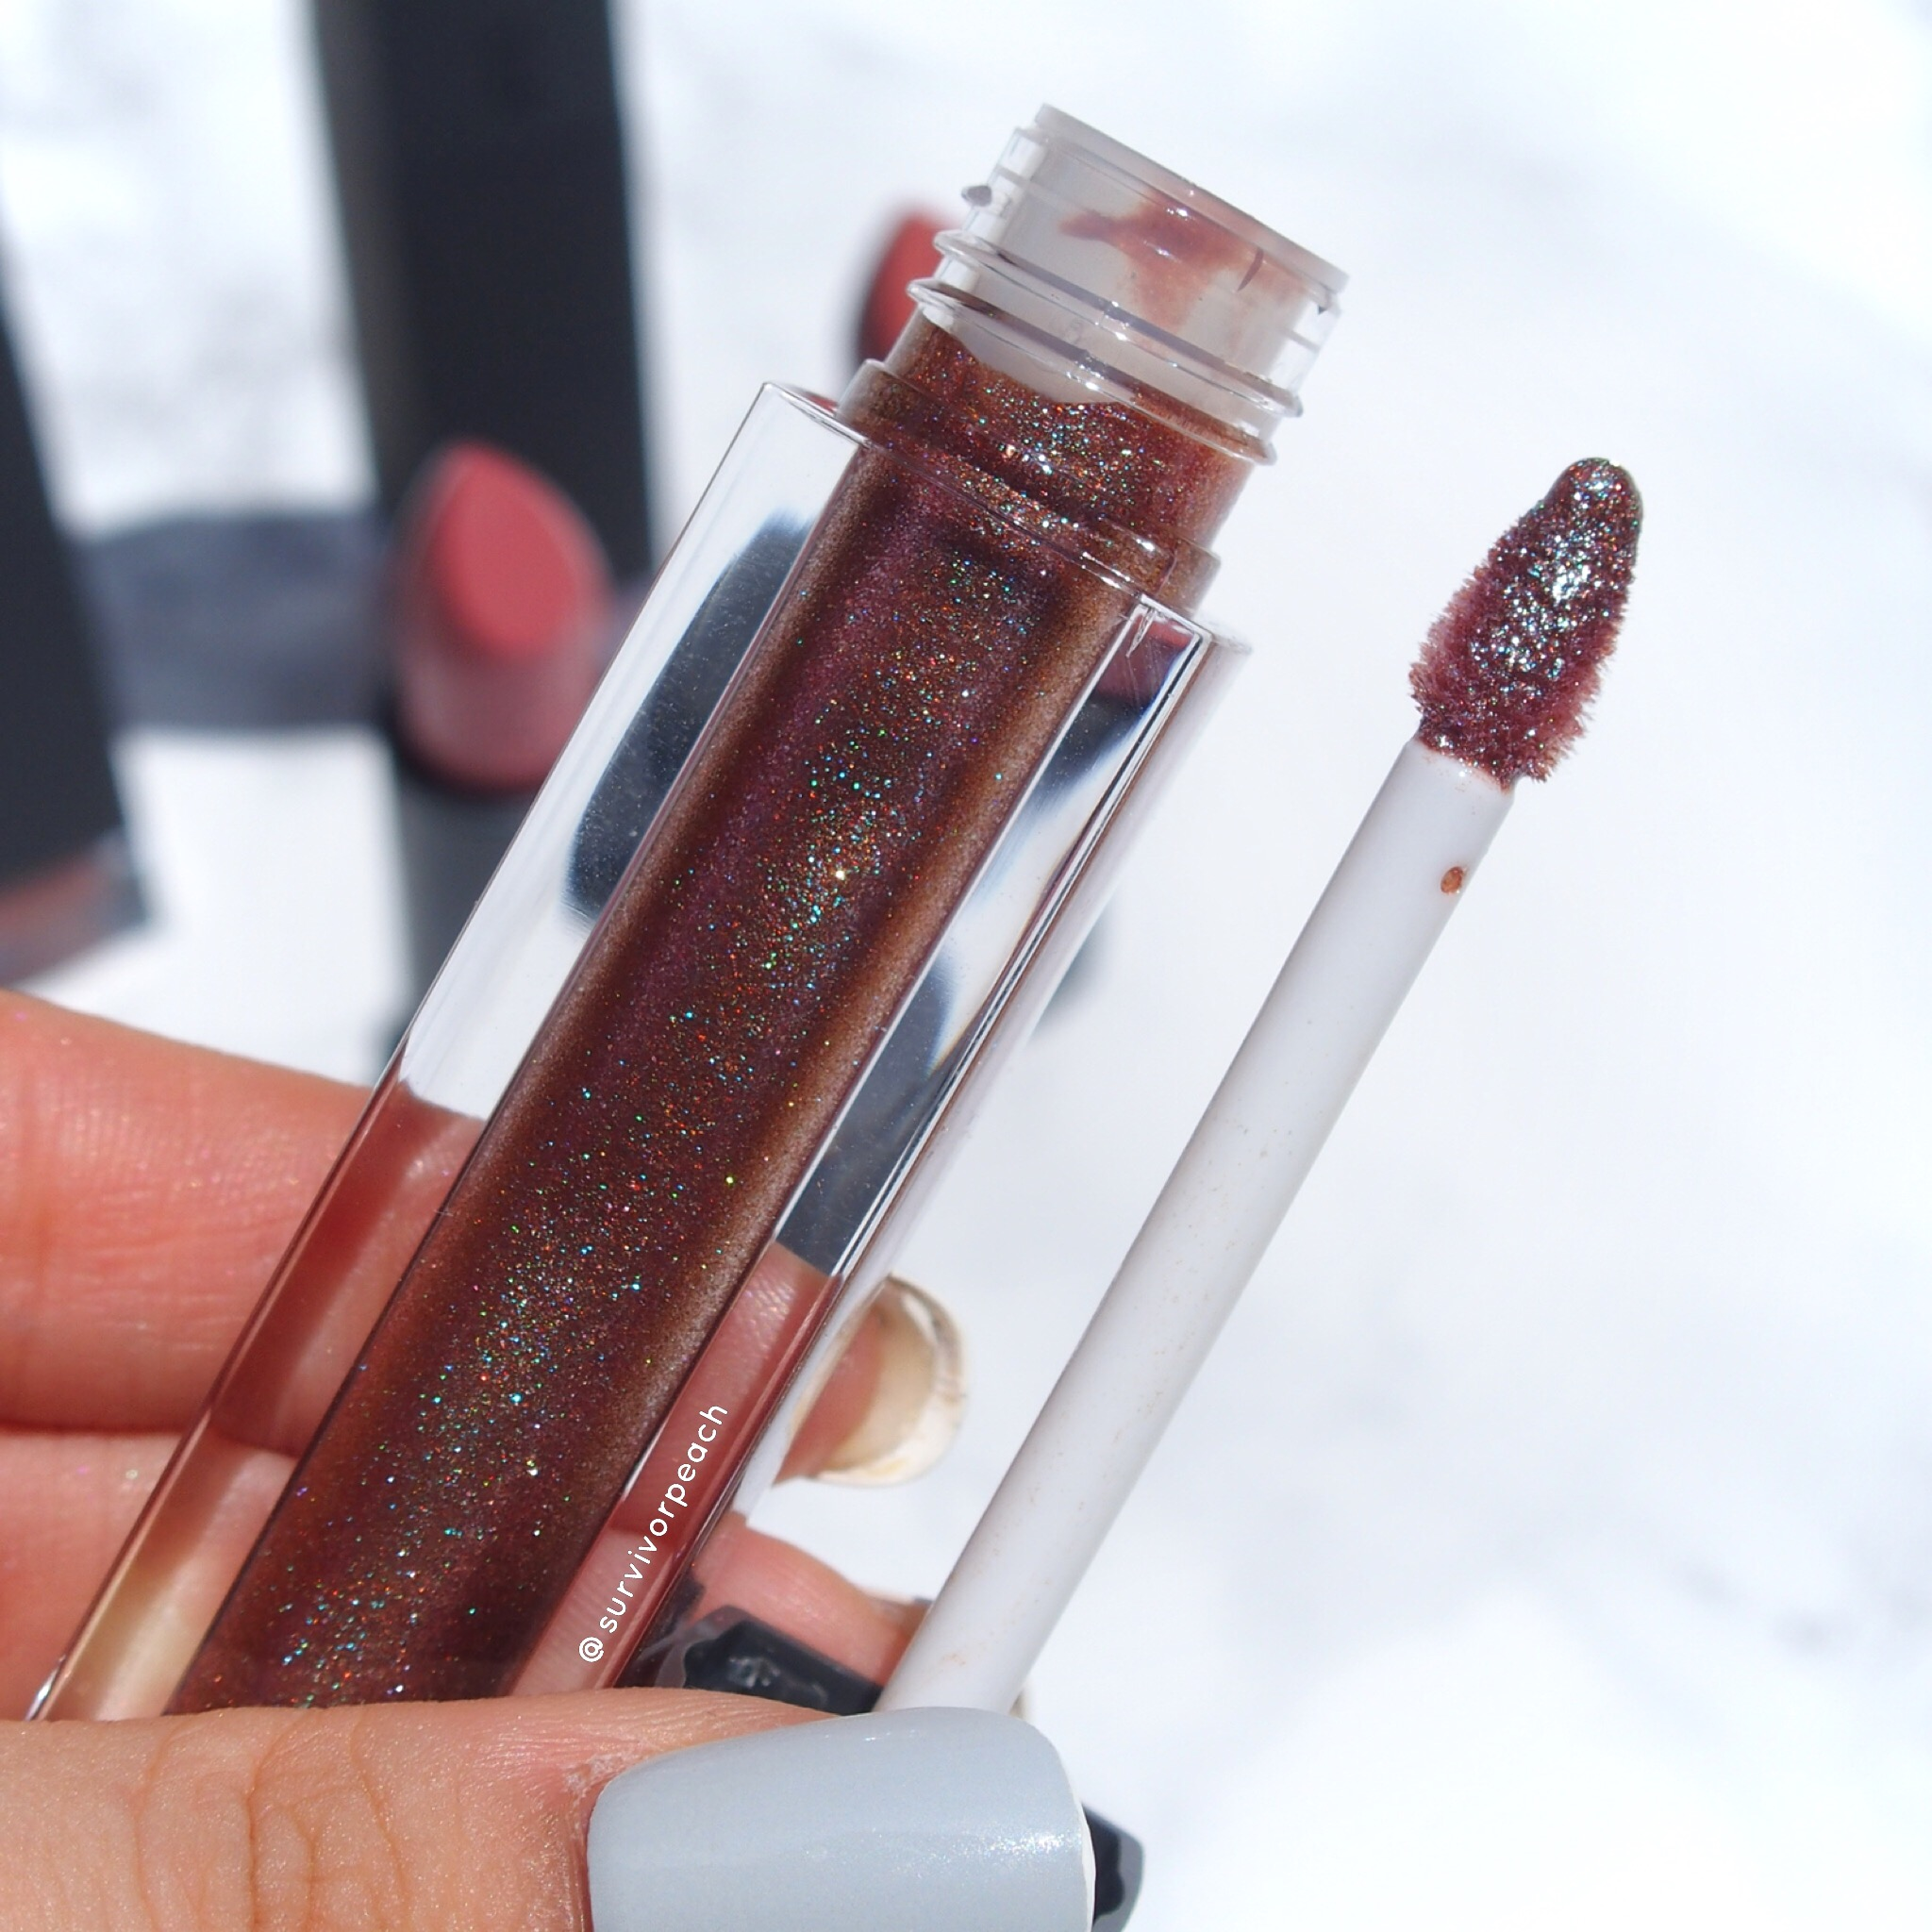 Bite Beauty Prismatic Pearl Creme Lip glosses in Oyster Pearl